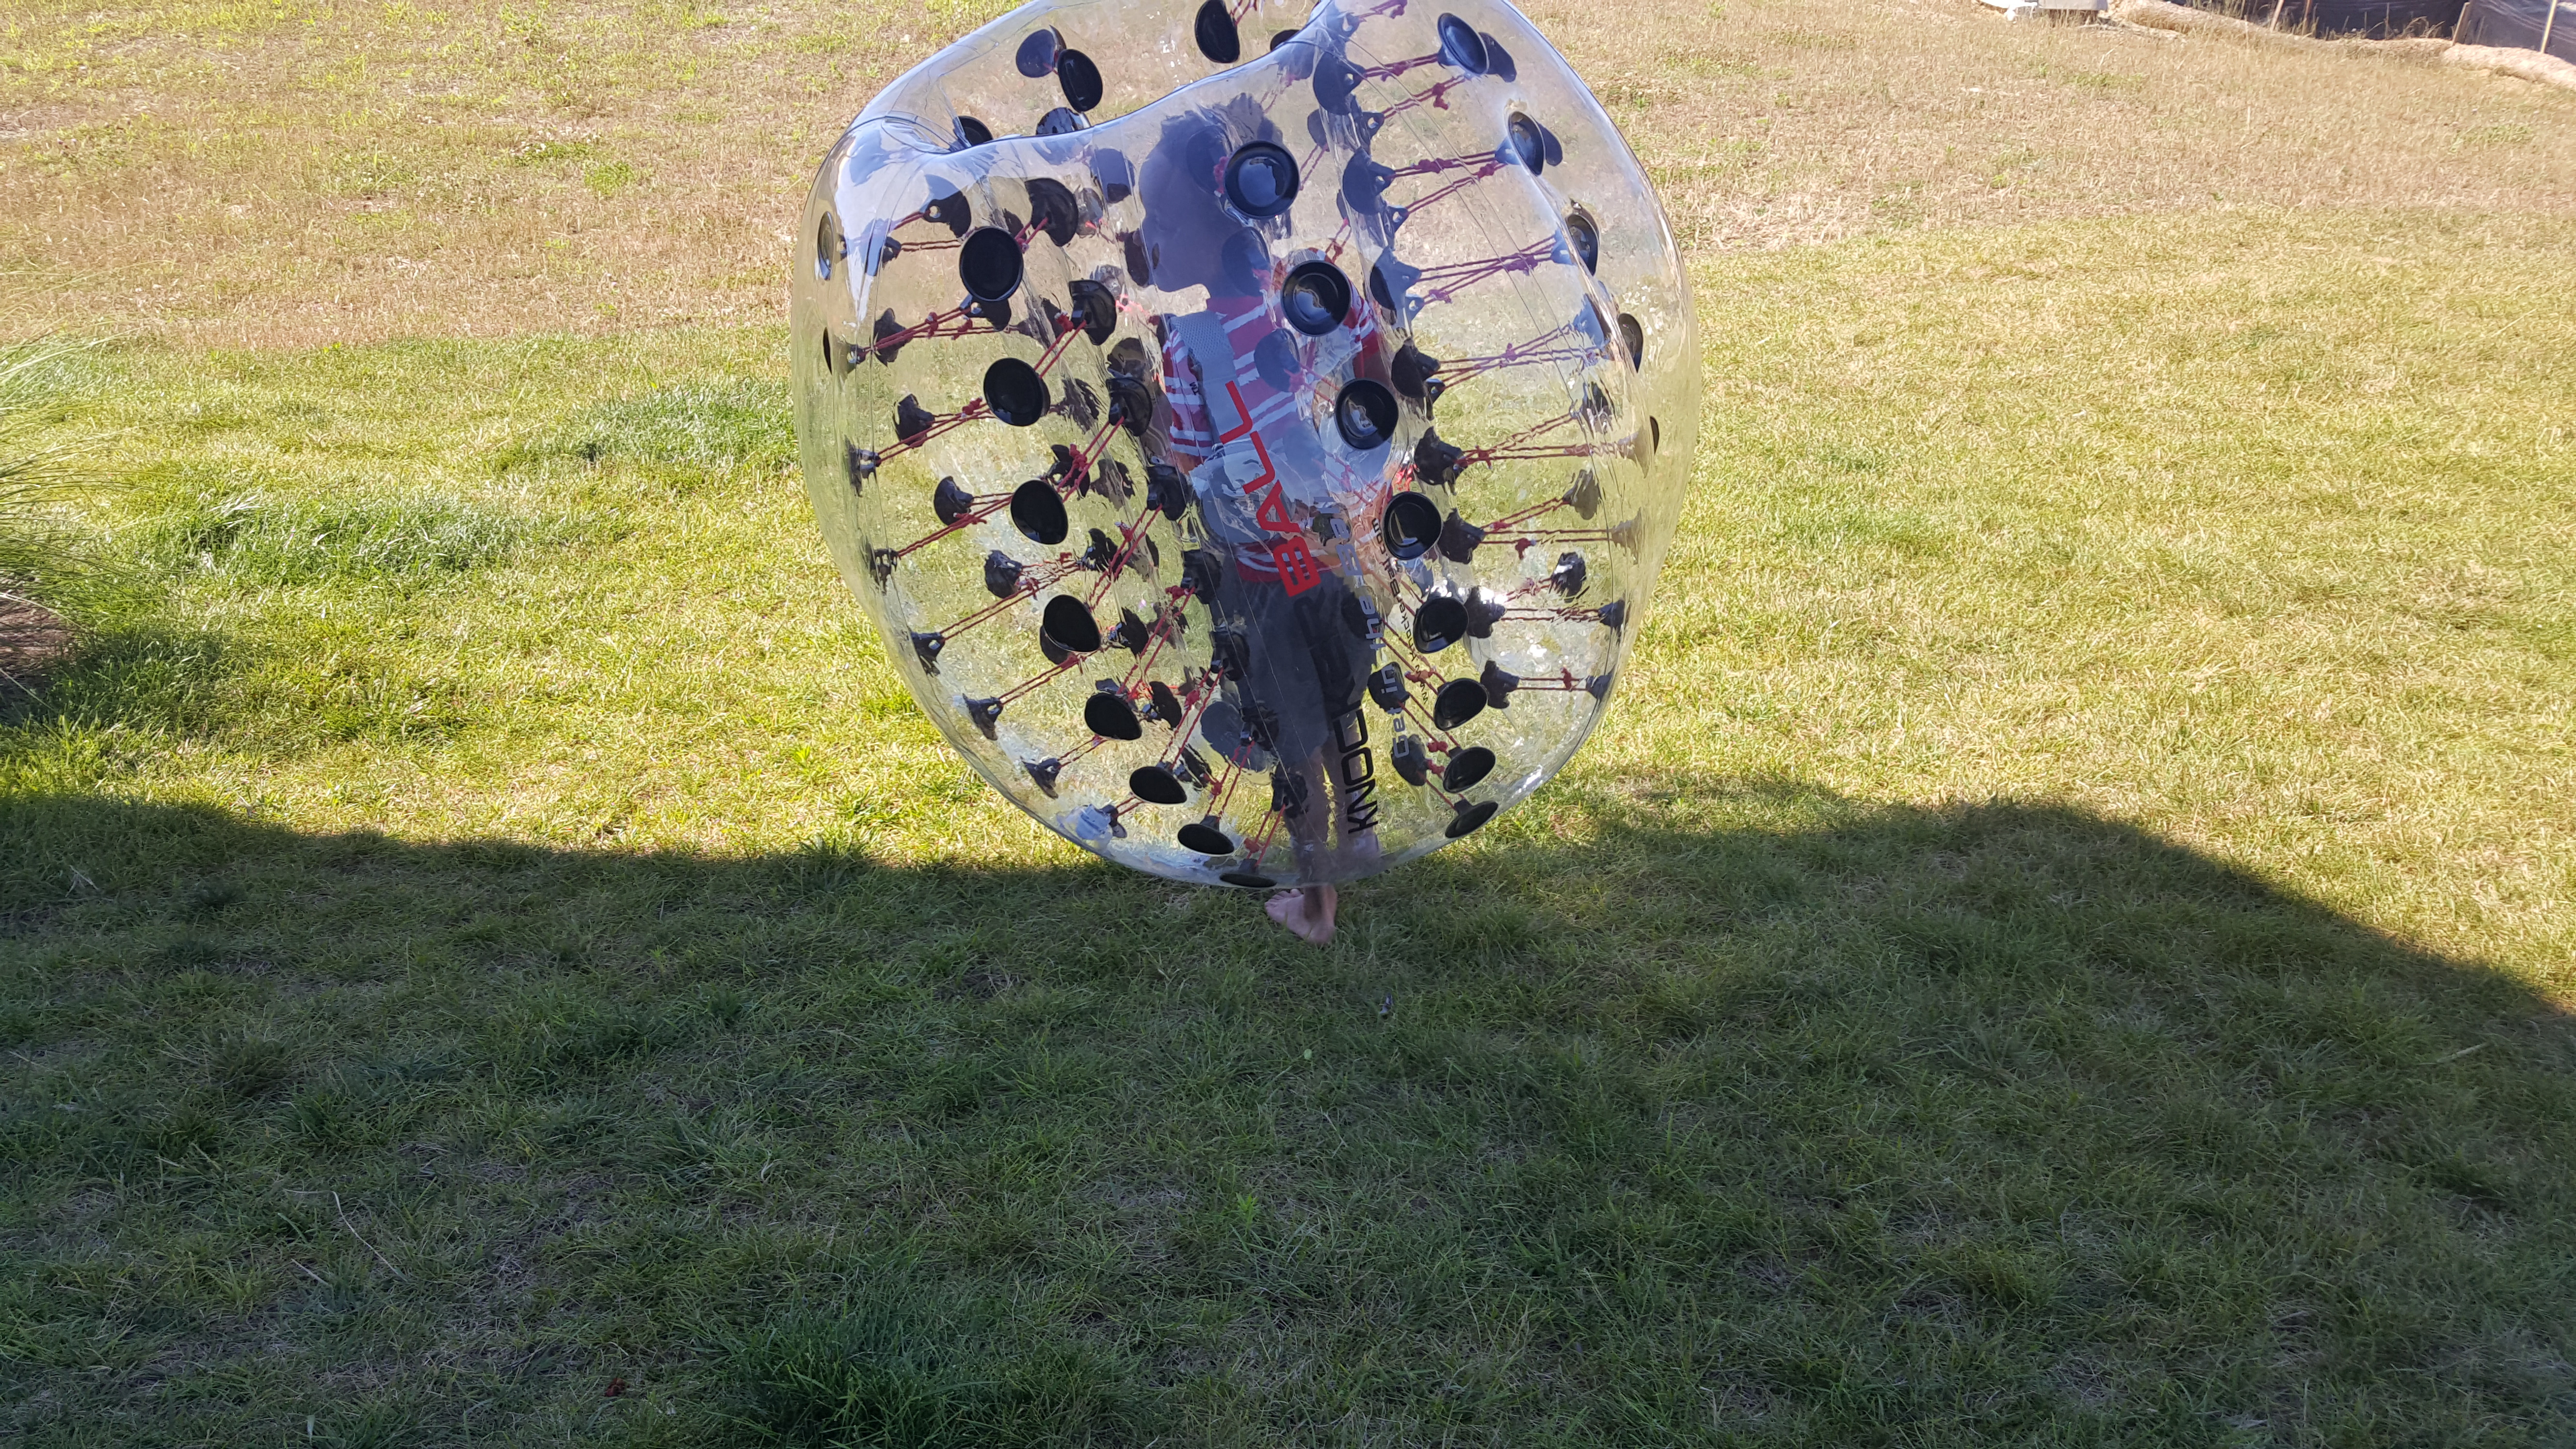 6 Knockerball Offsite Party